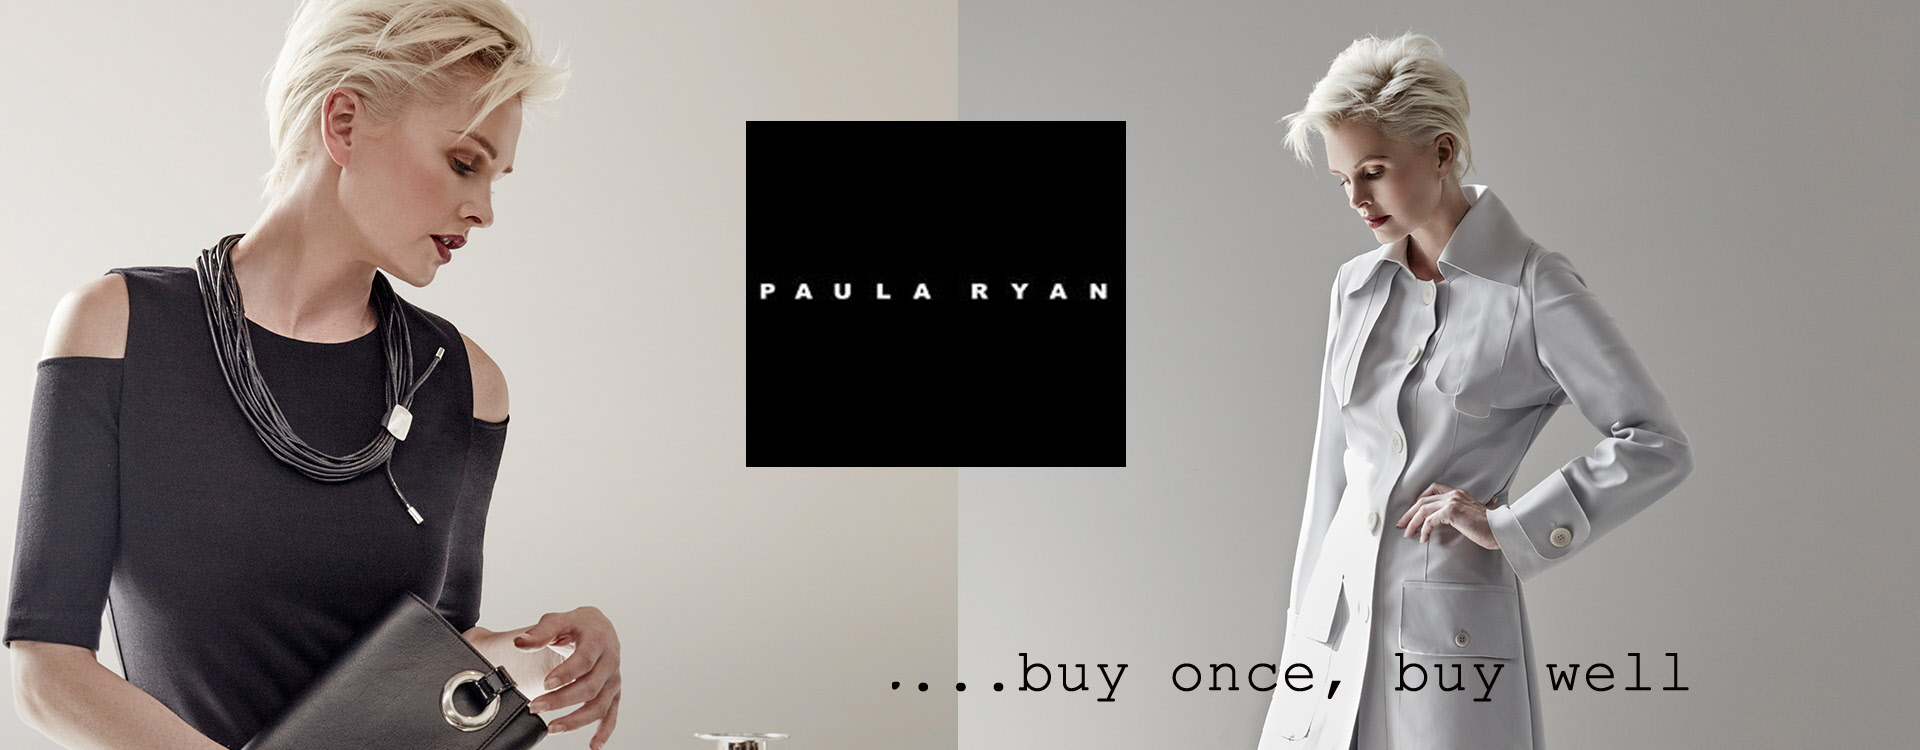 Paula Ryan WINTER COLLECTION 2017